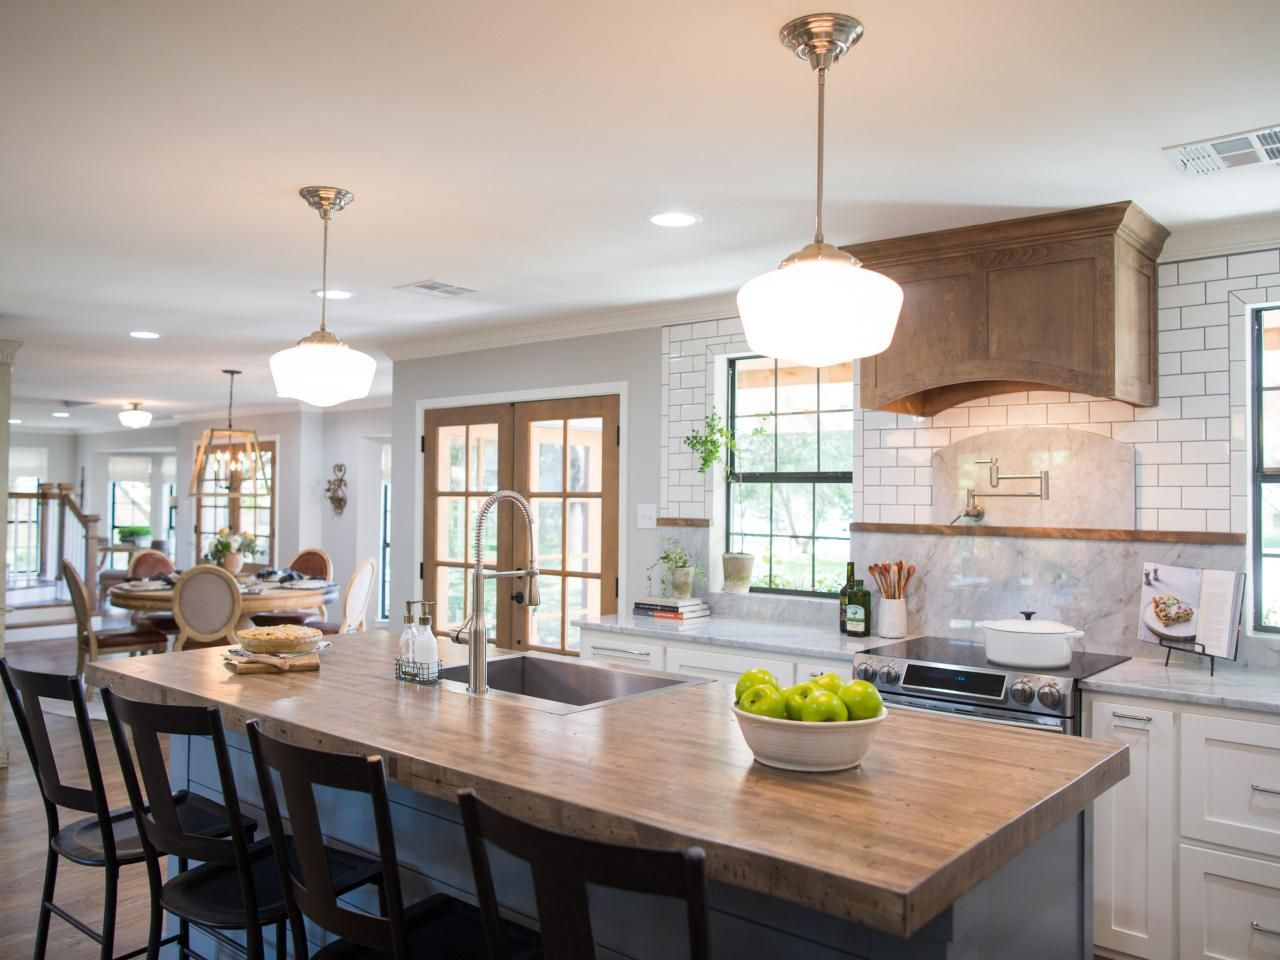 the most memorable kitchens by chip and joanna gaines in 2020 joanna gaines kitchen fixer on kitchen layout ideas with island joanna gaines id=21975